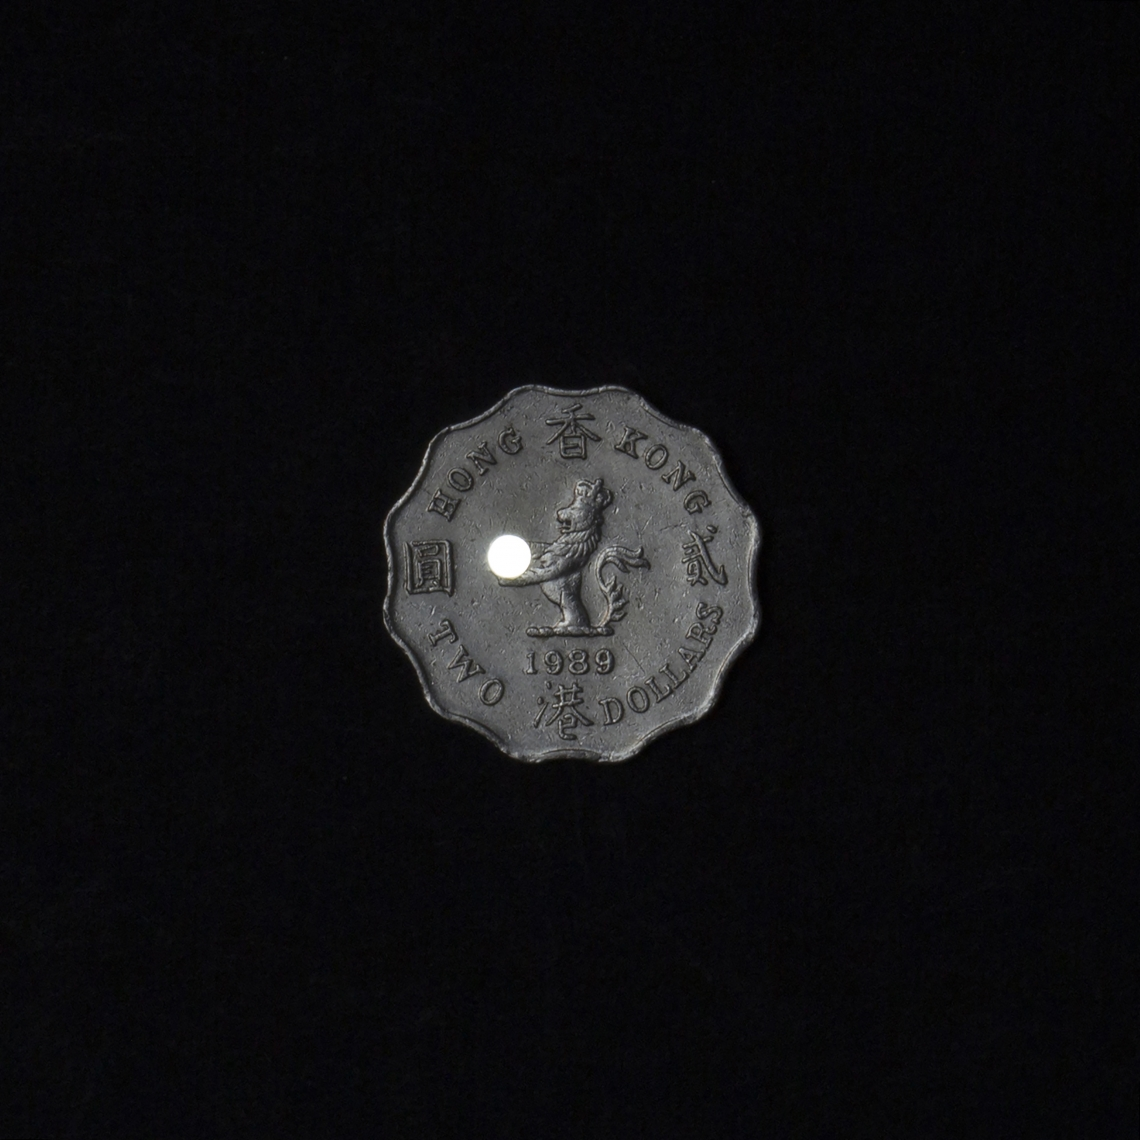 A coin carving with a lion holding on a pearl of the orient. We drilled a hole on the pearl and turned it into pinhole lens.